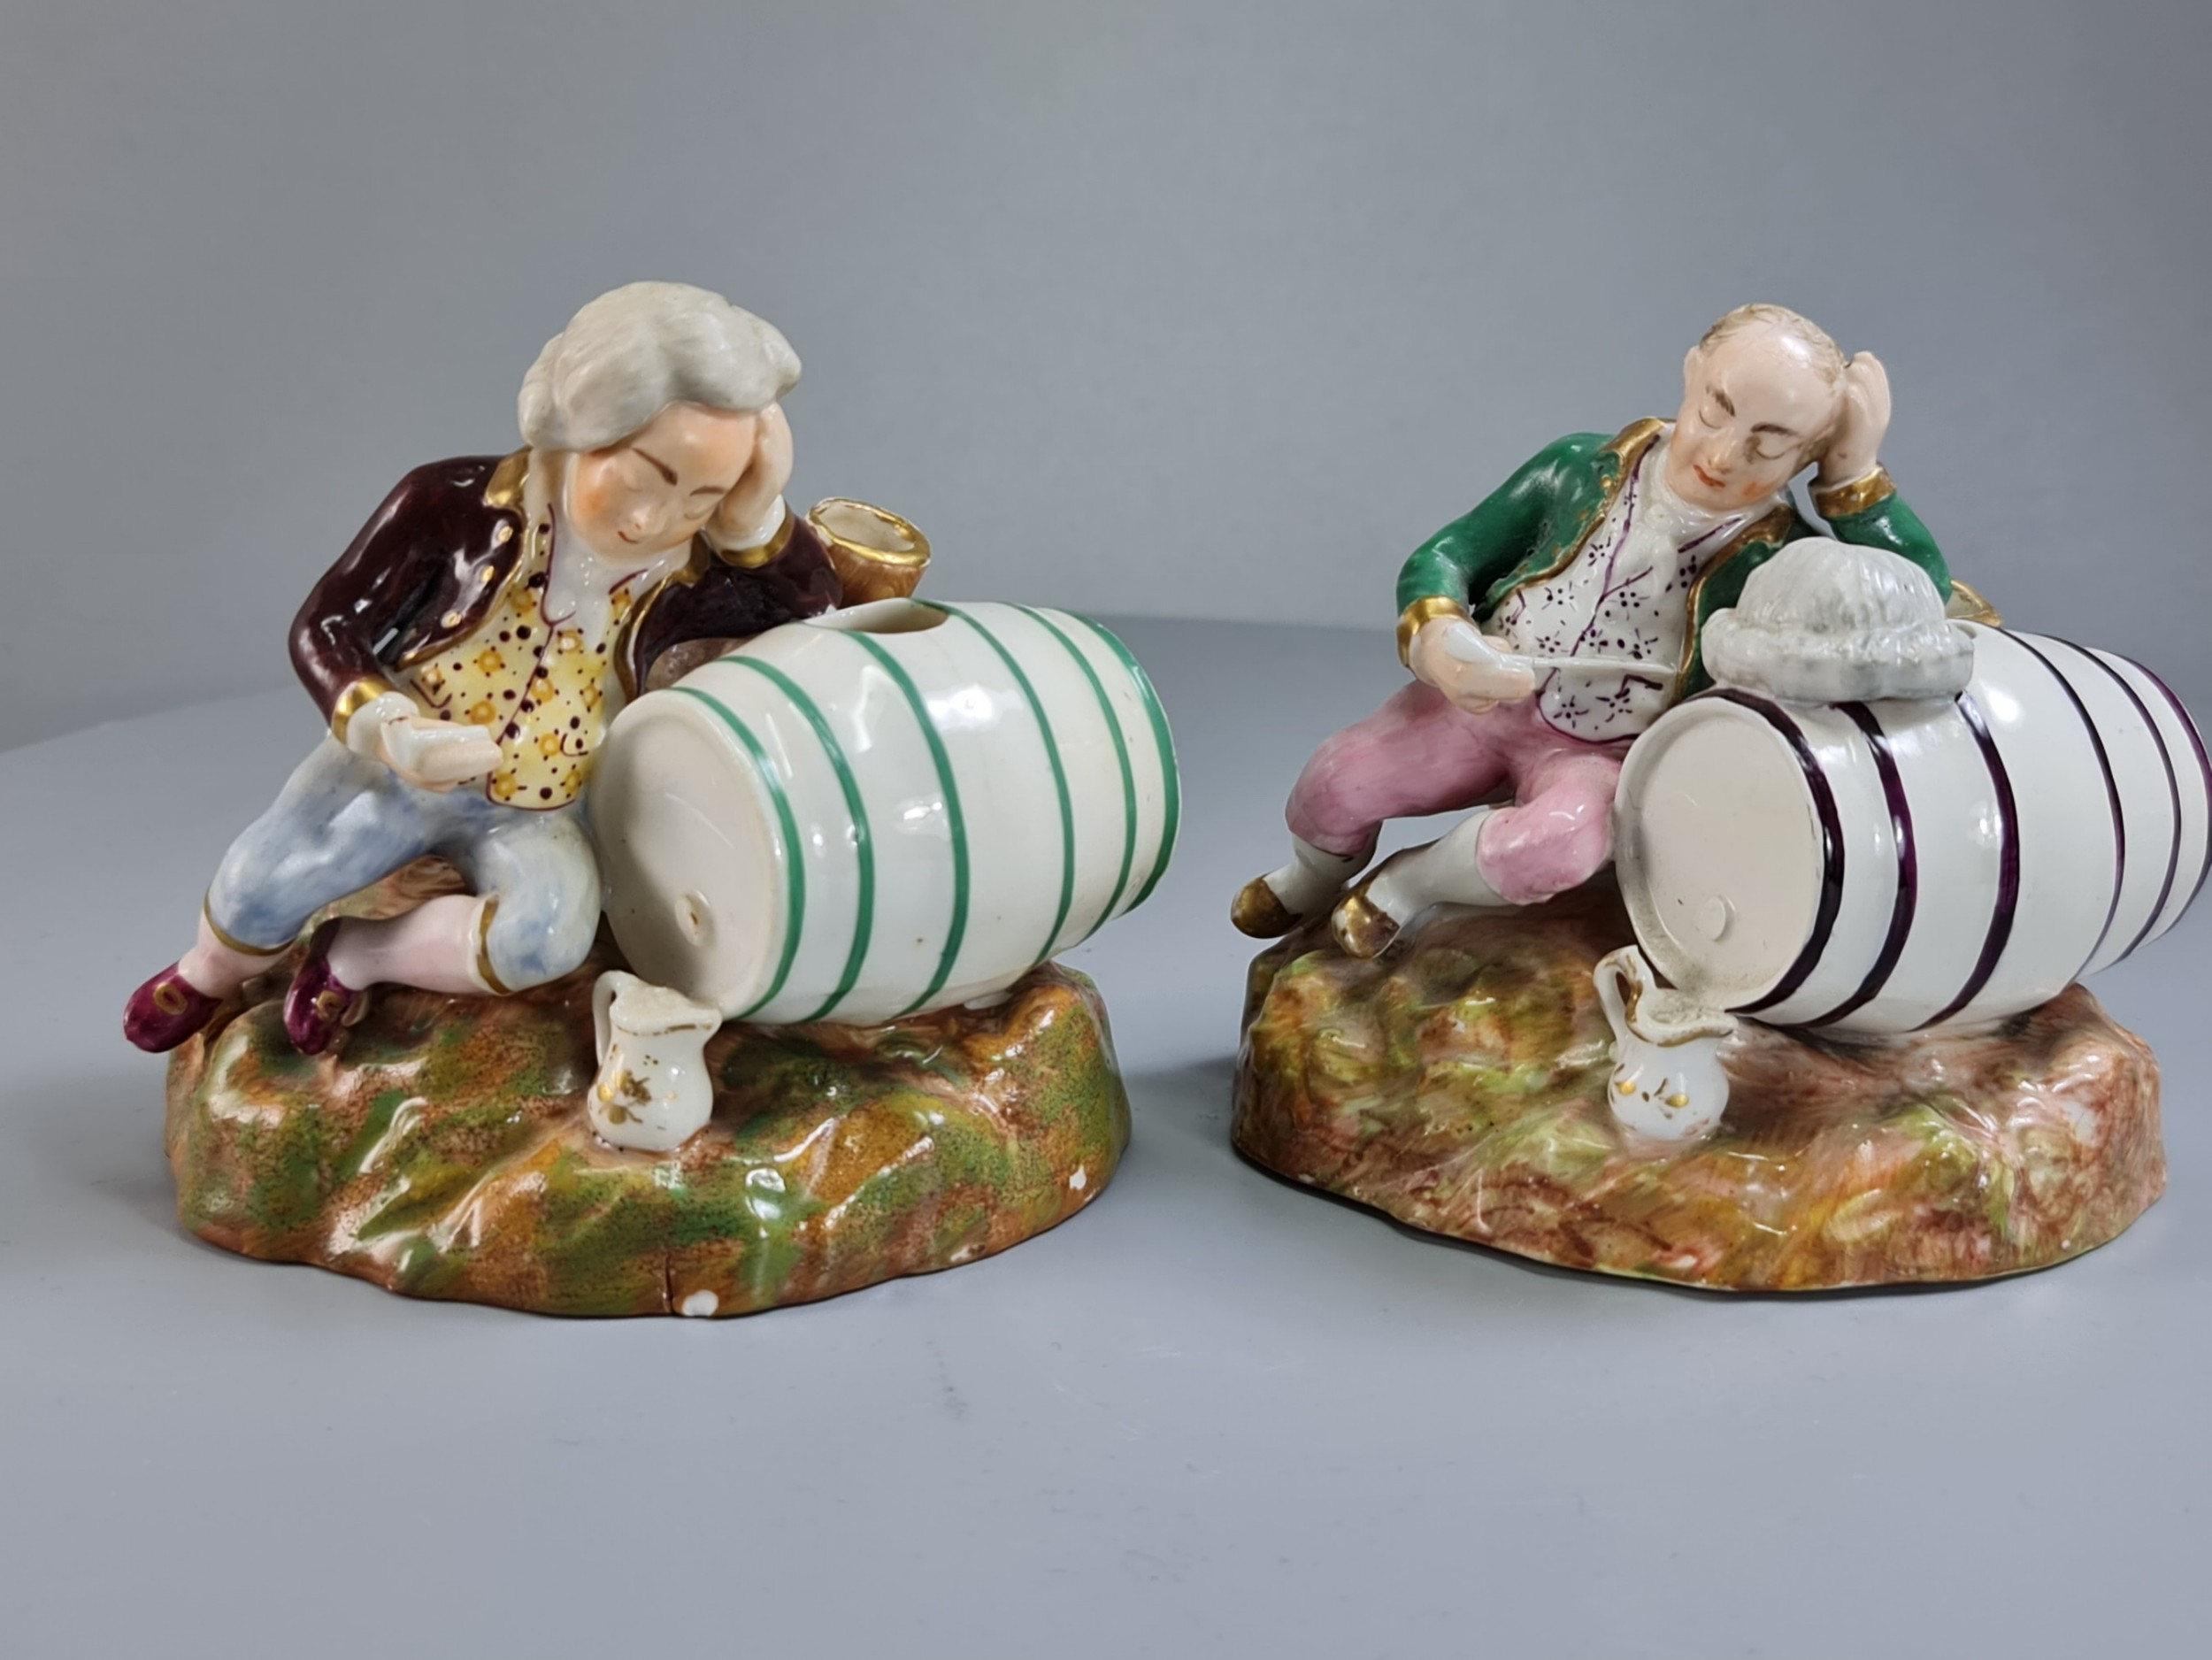 unusual early 19thc pair of porcelain inkwells formed as barrels figures by dudson